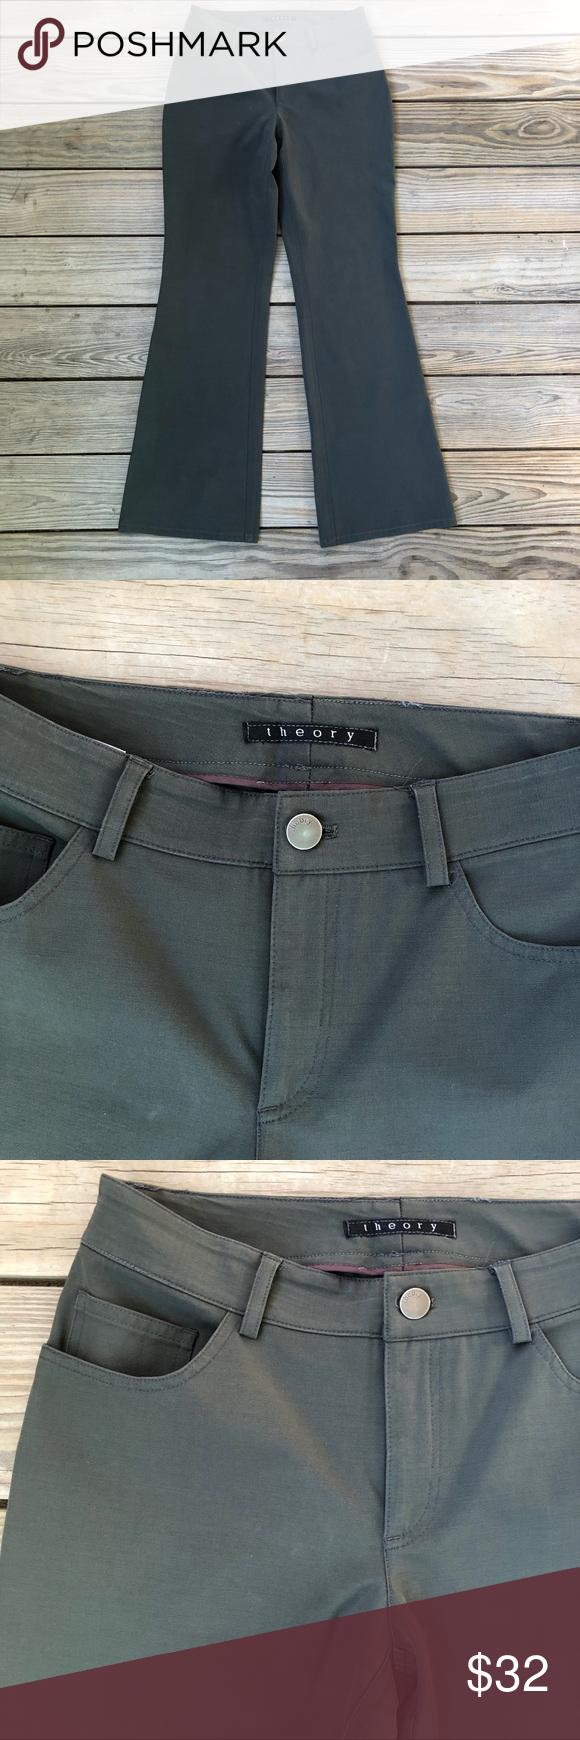 Theory Pants Theory Pants. One tiny spot that is almost unnoticeable. -see photo. Thanks for shopping my closet Theory Pants